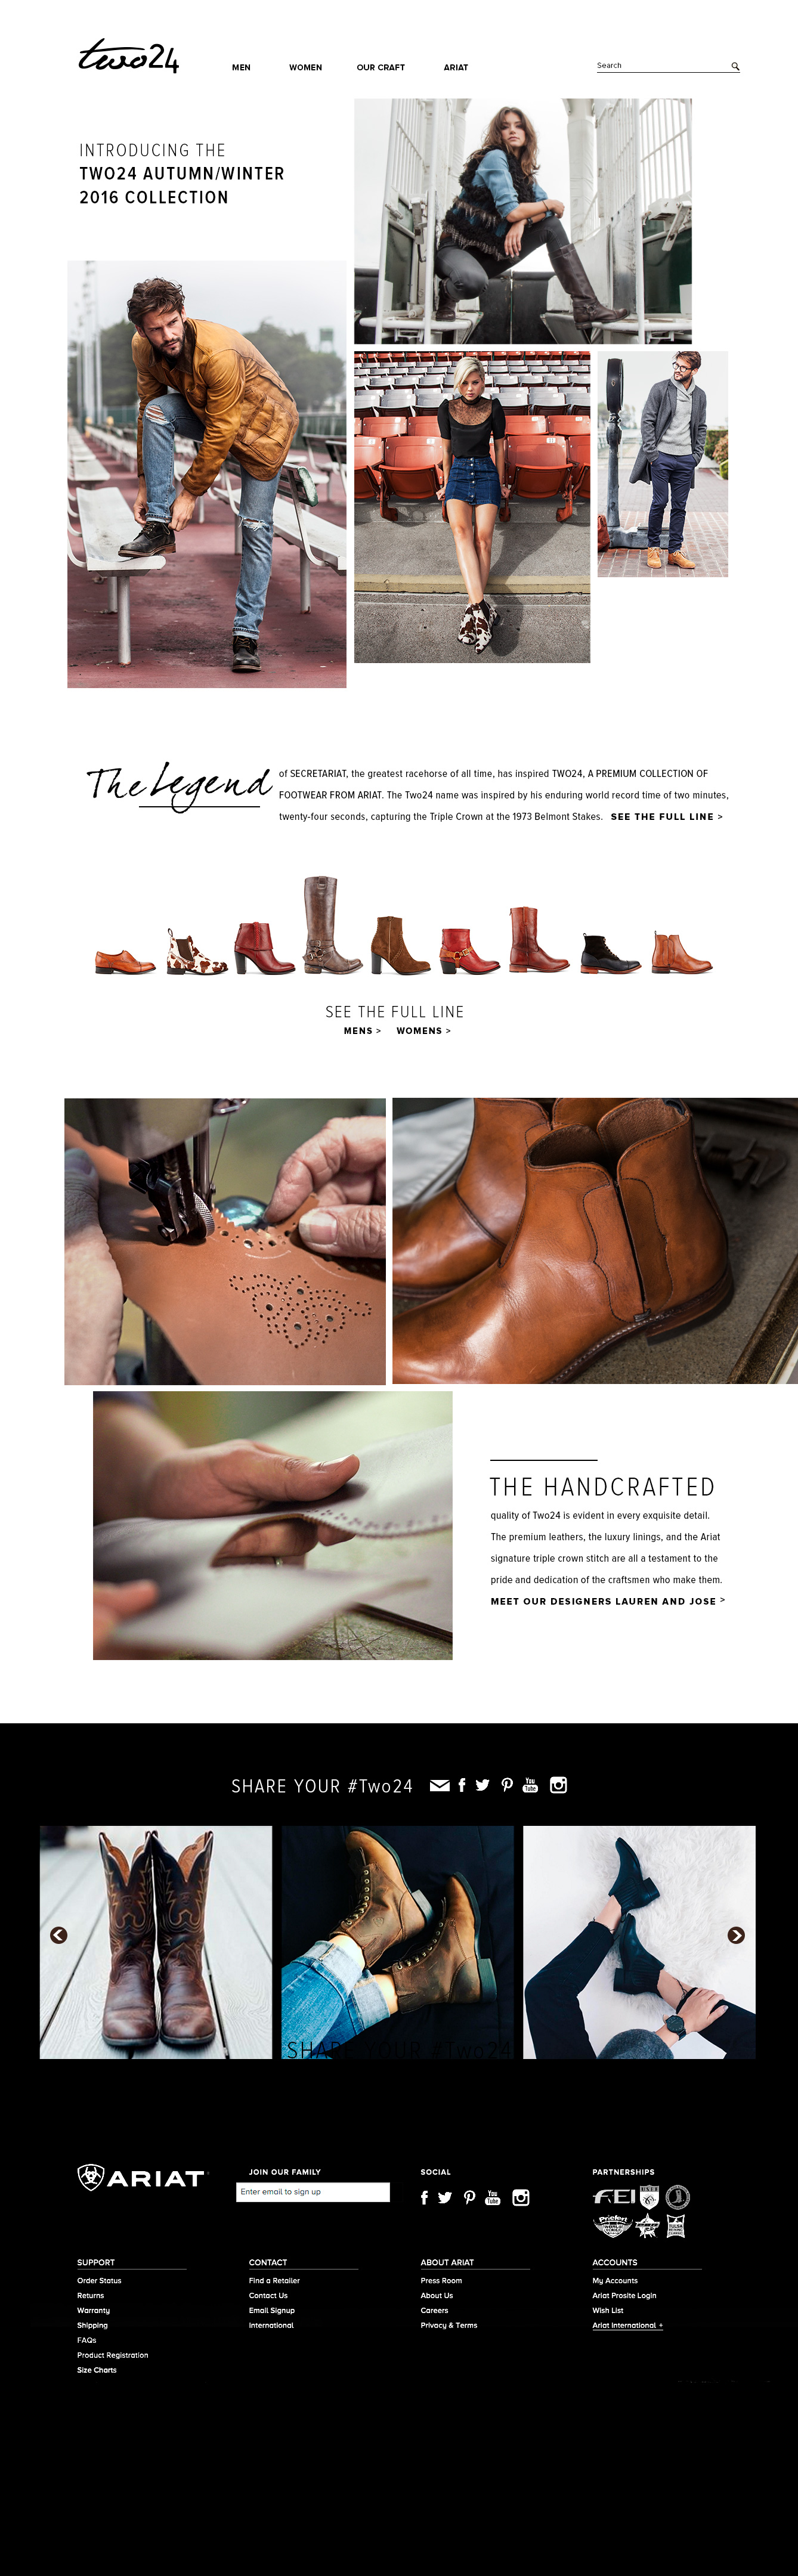 Ariat Two 24 landing page with several photographs of models showing Ariat two 24 boots